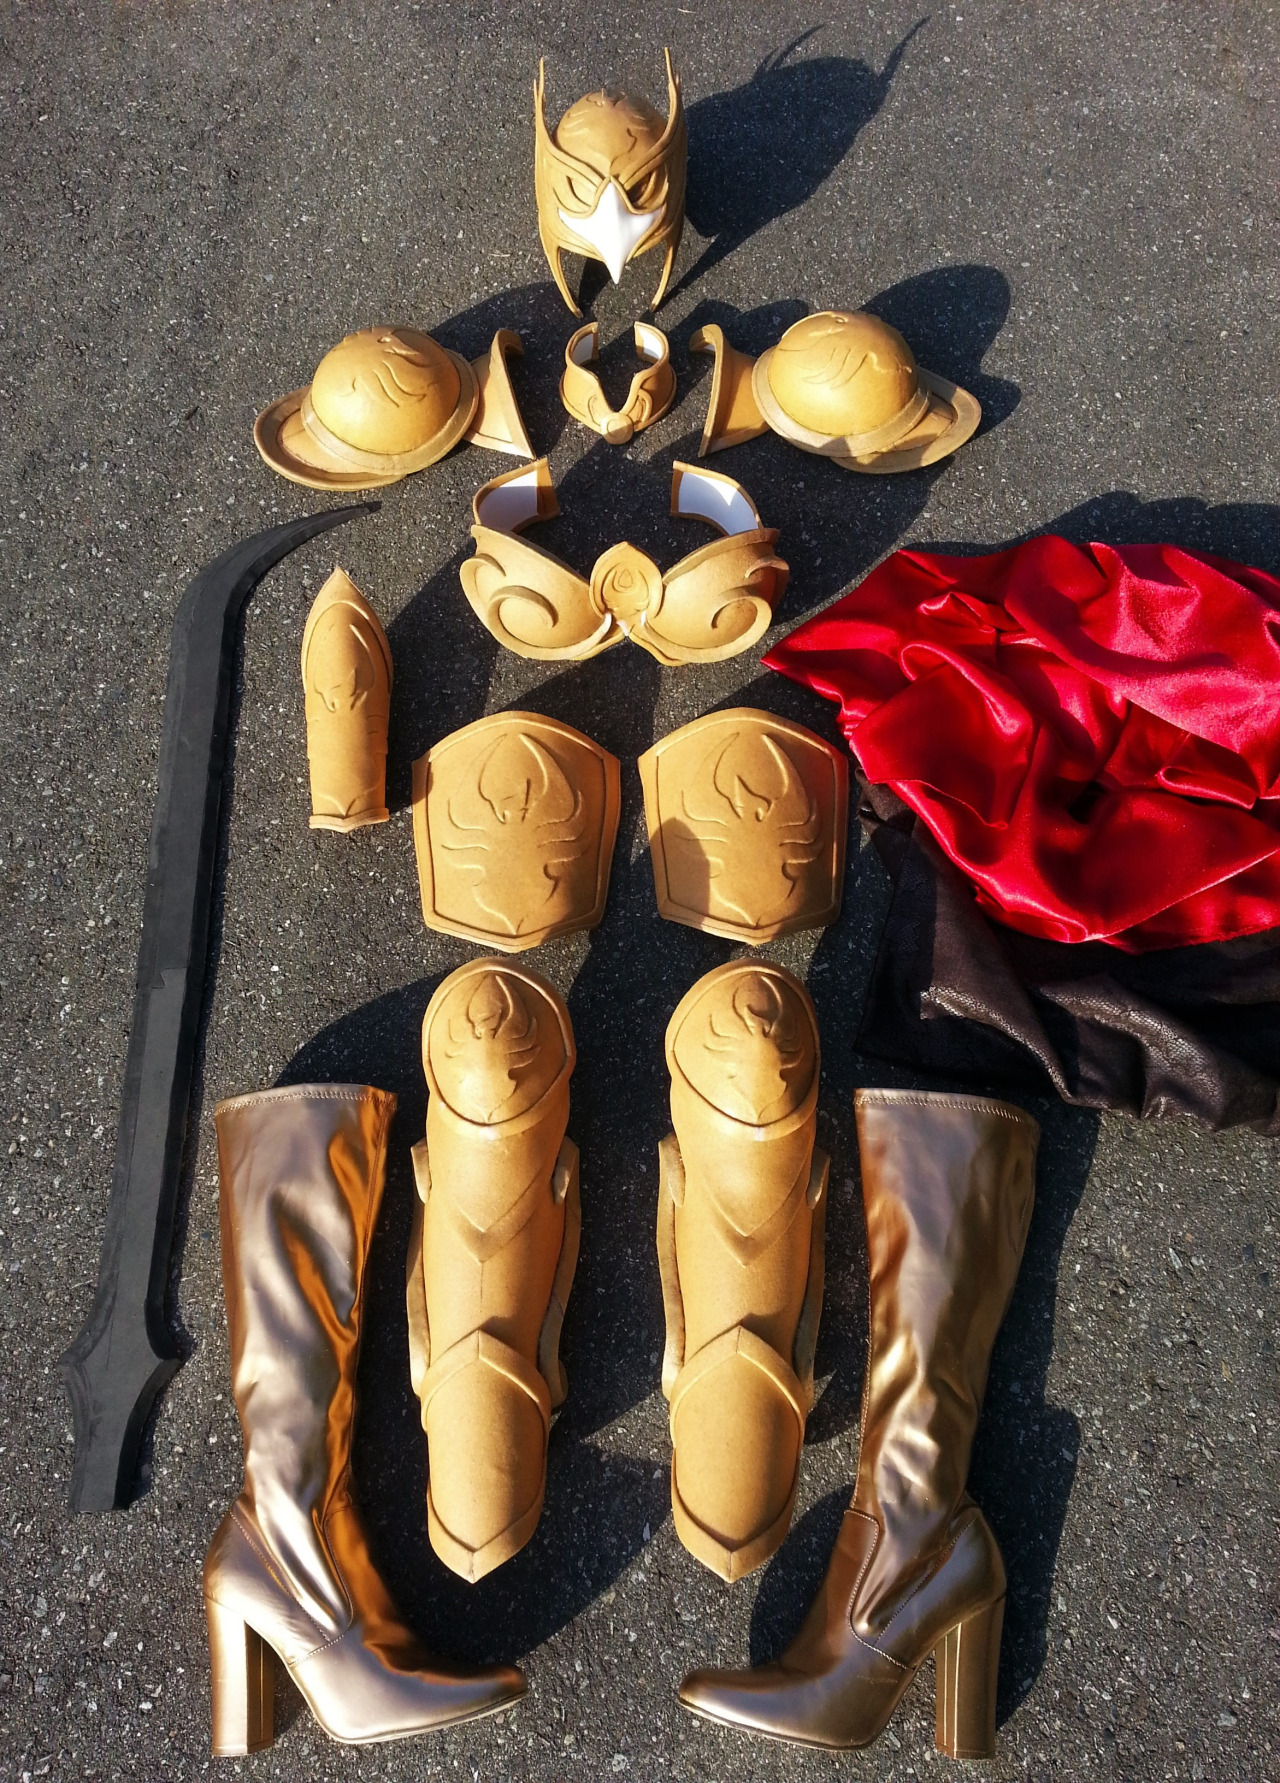 Breastplate Of The Golden Valkyr.